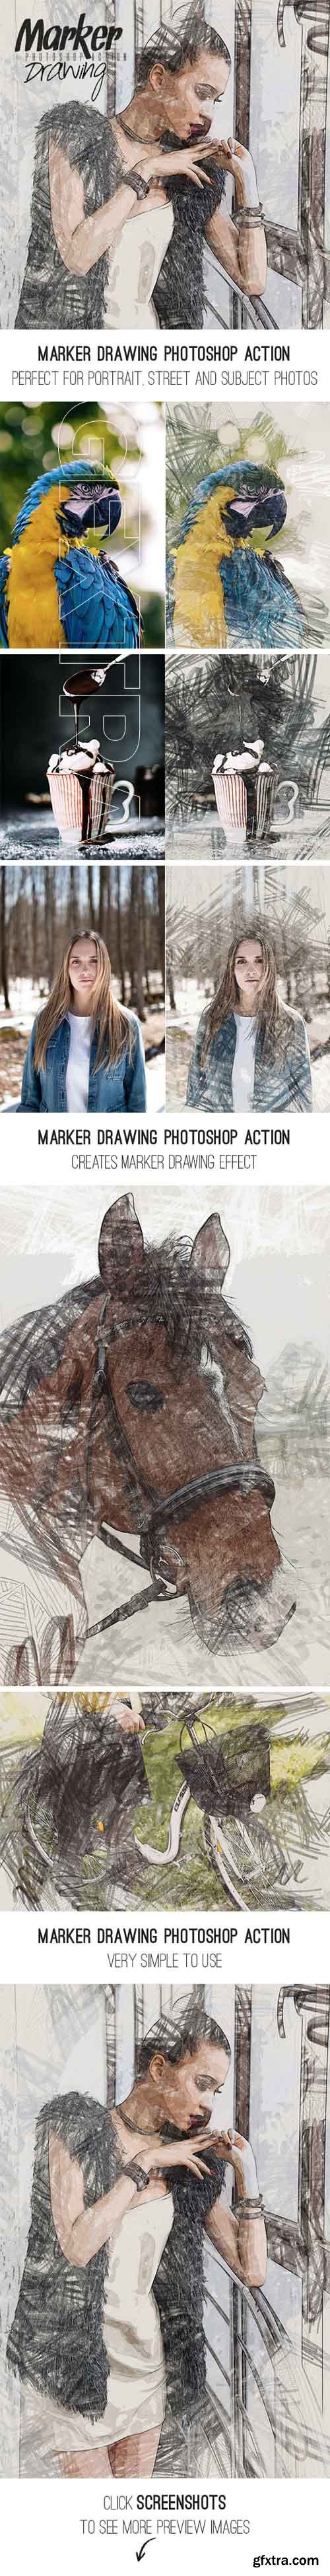 GraphicRiver - Marker Drawing Photoshop Action 20377468